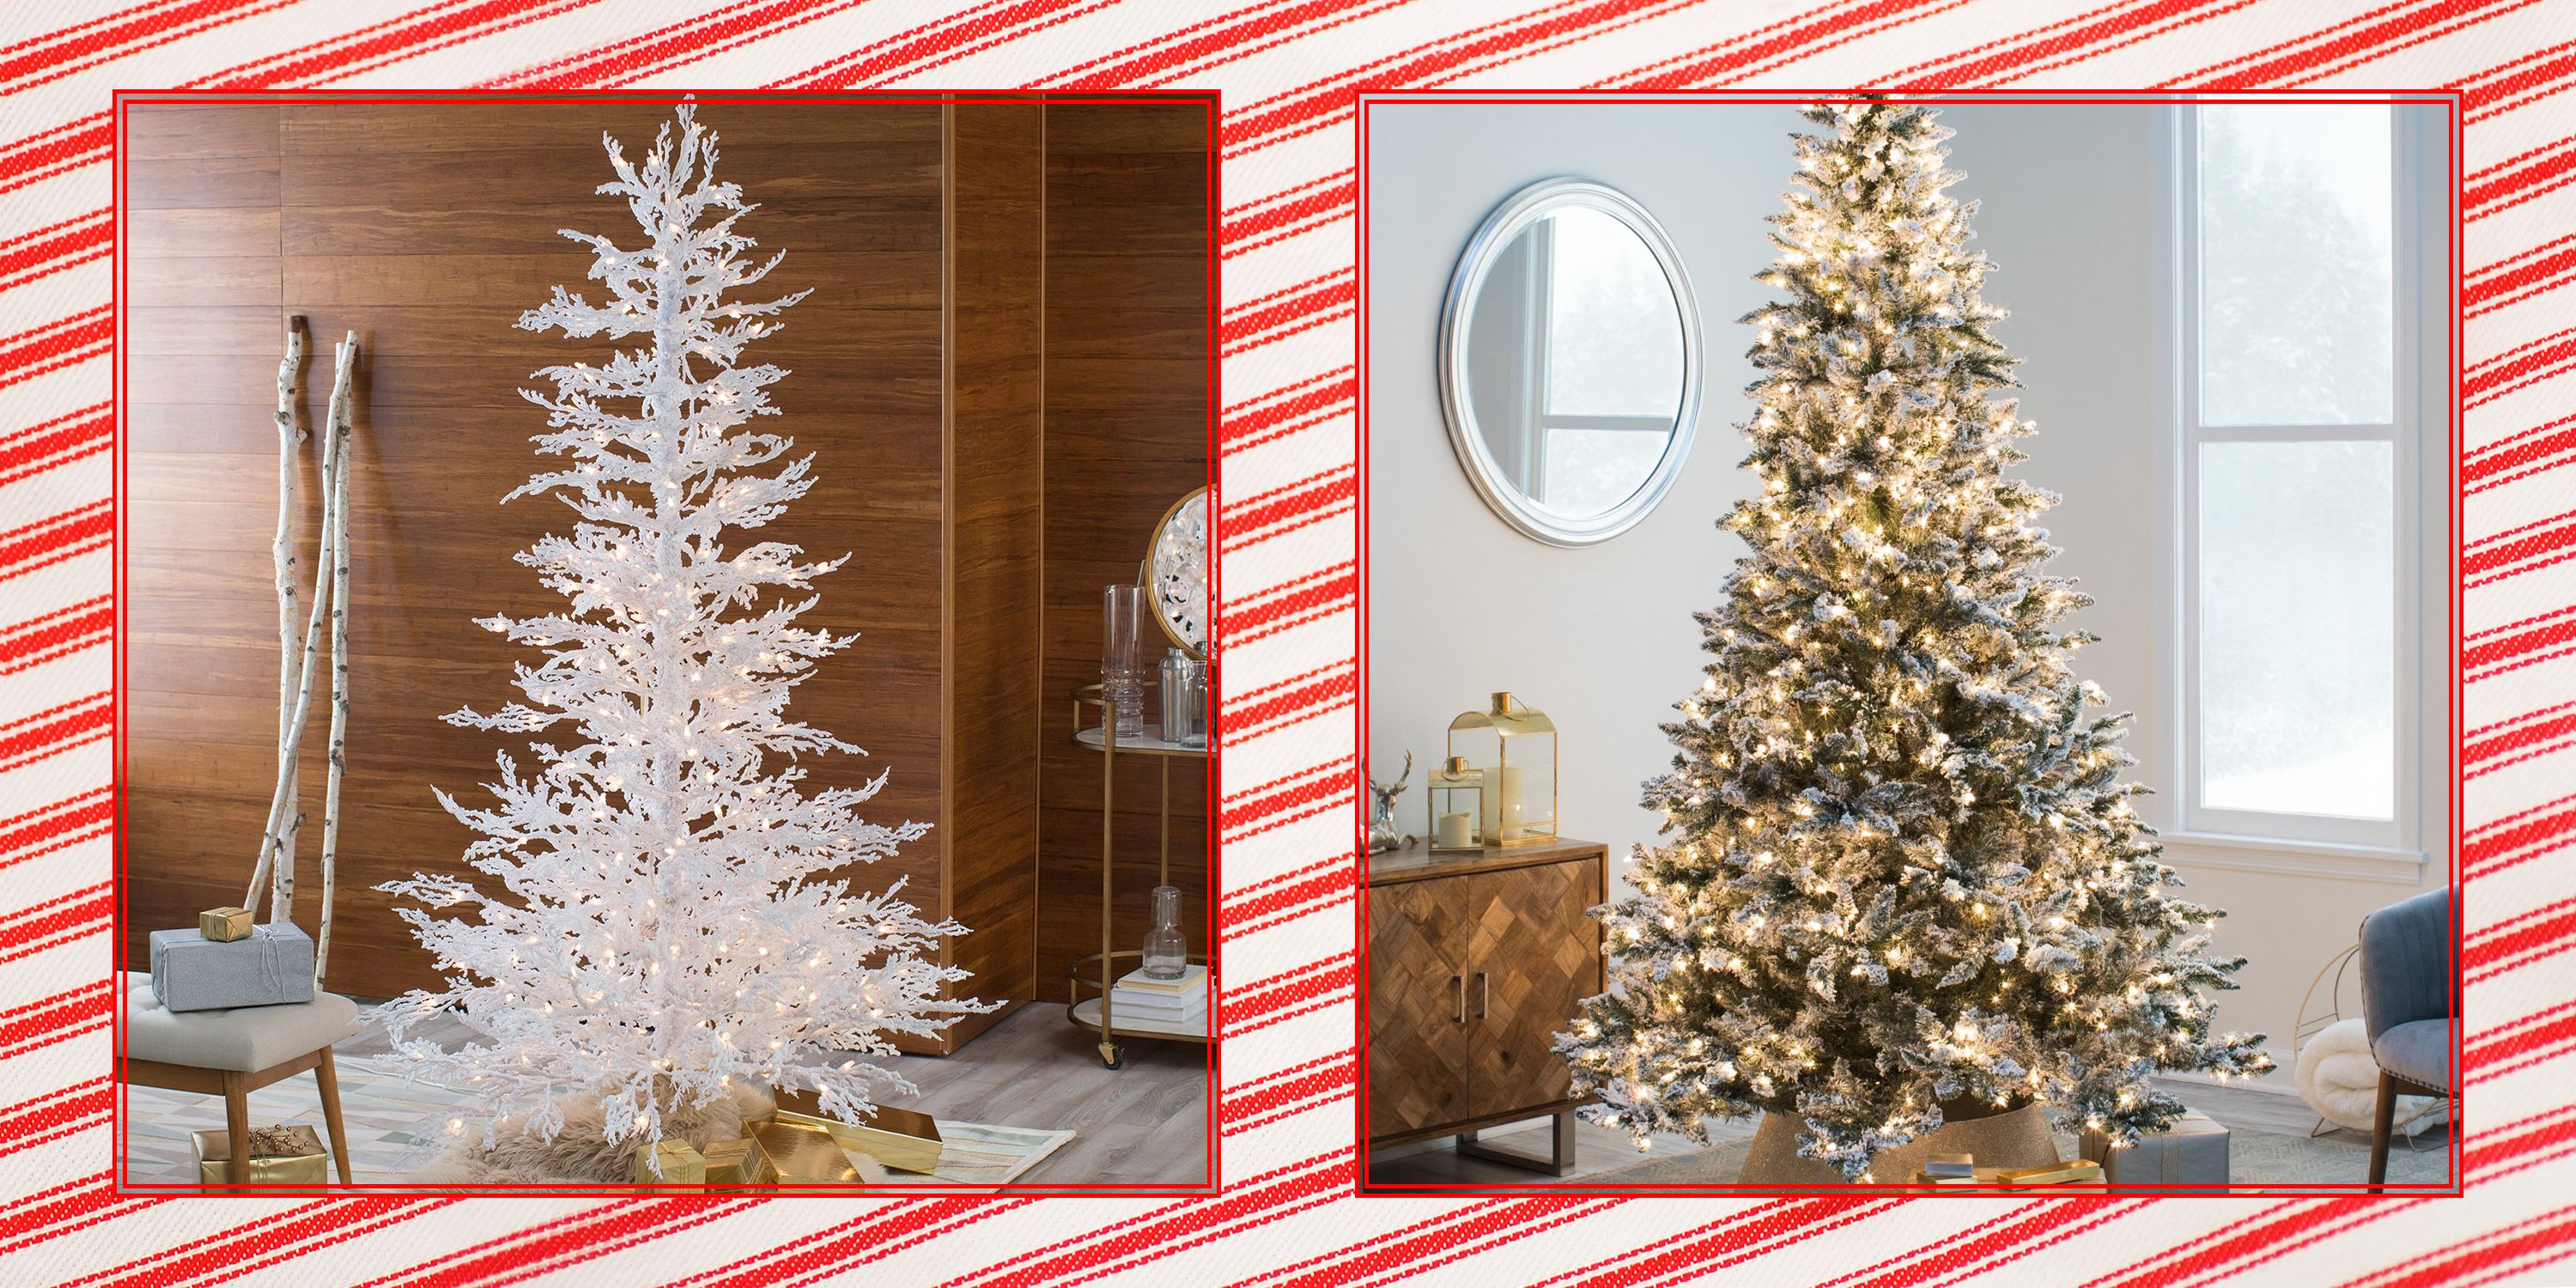 24 Best Artificial Christmas Trees - Where to Buy Fake Christmas Trees